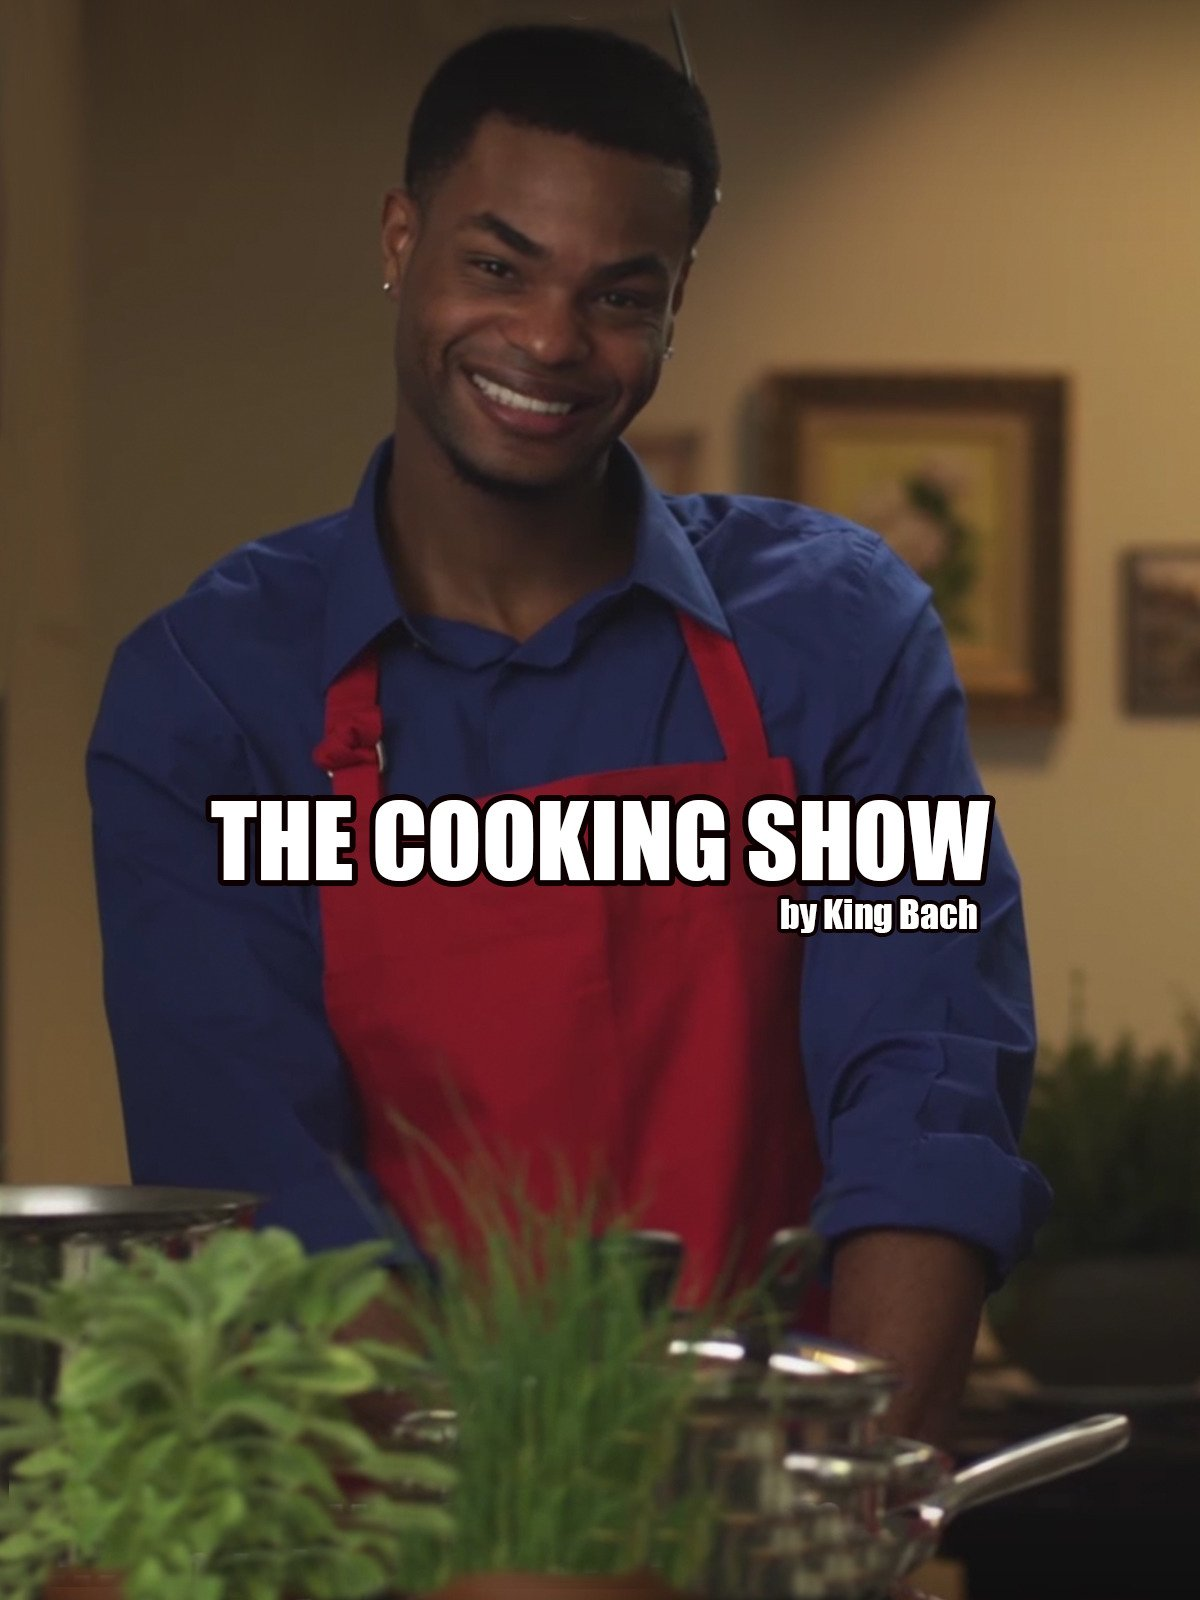 The Cooking Show by King Bach